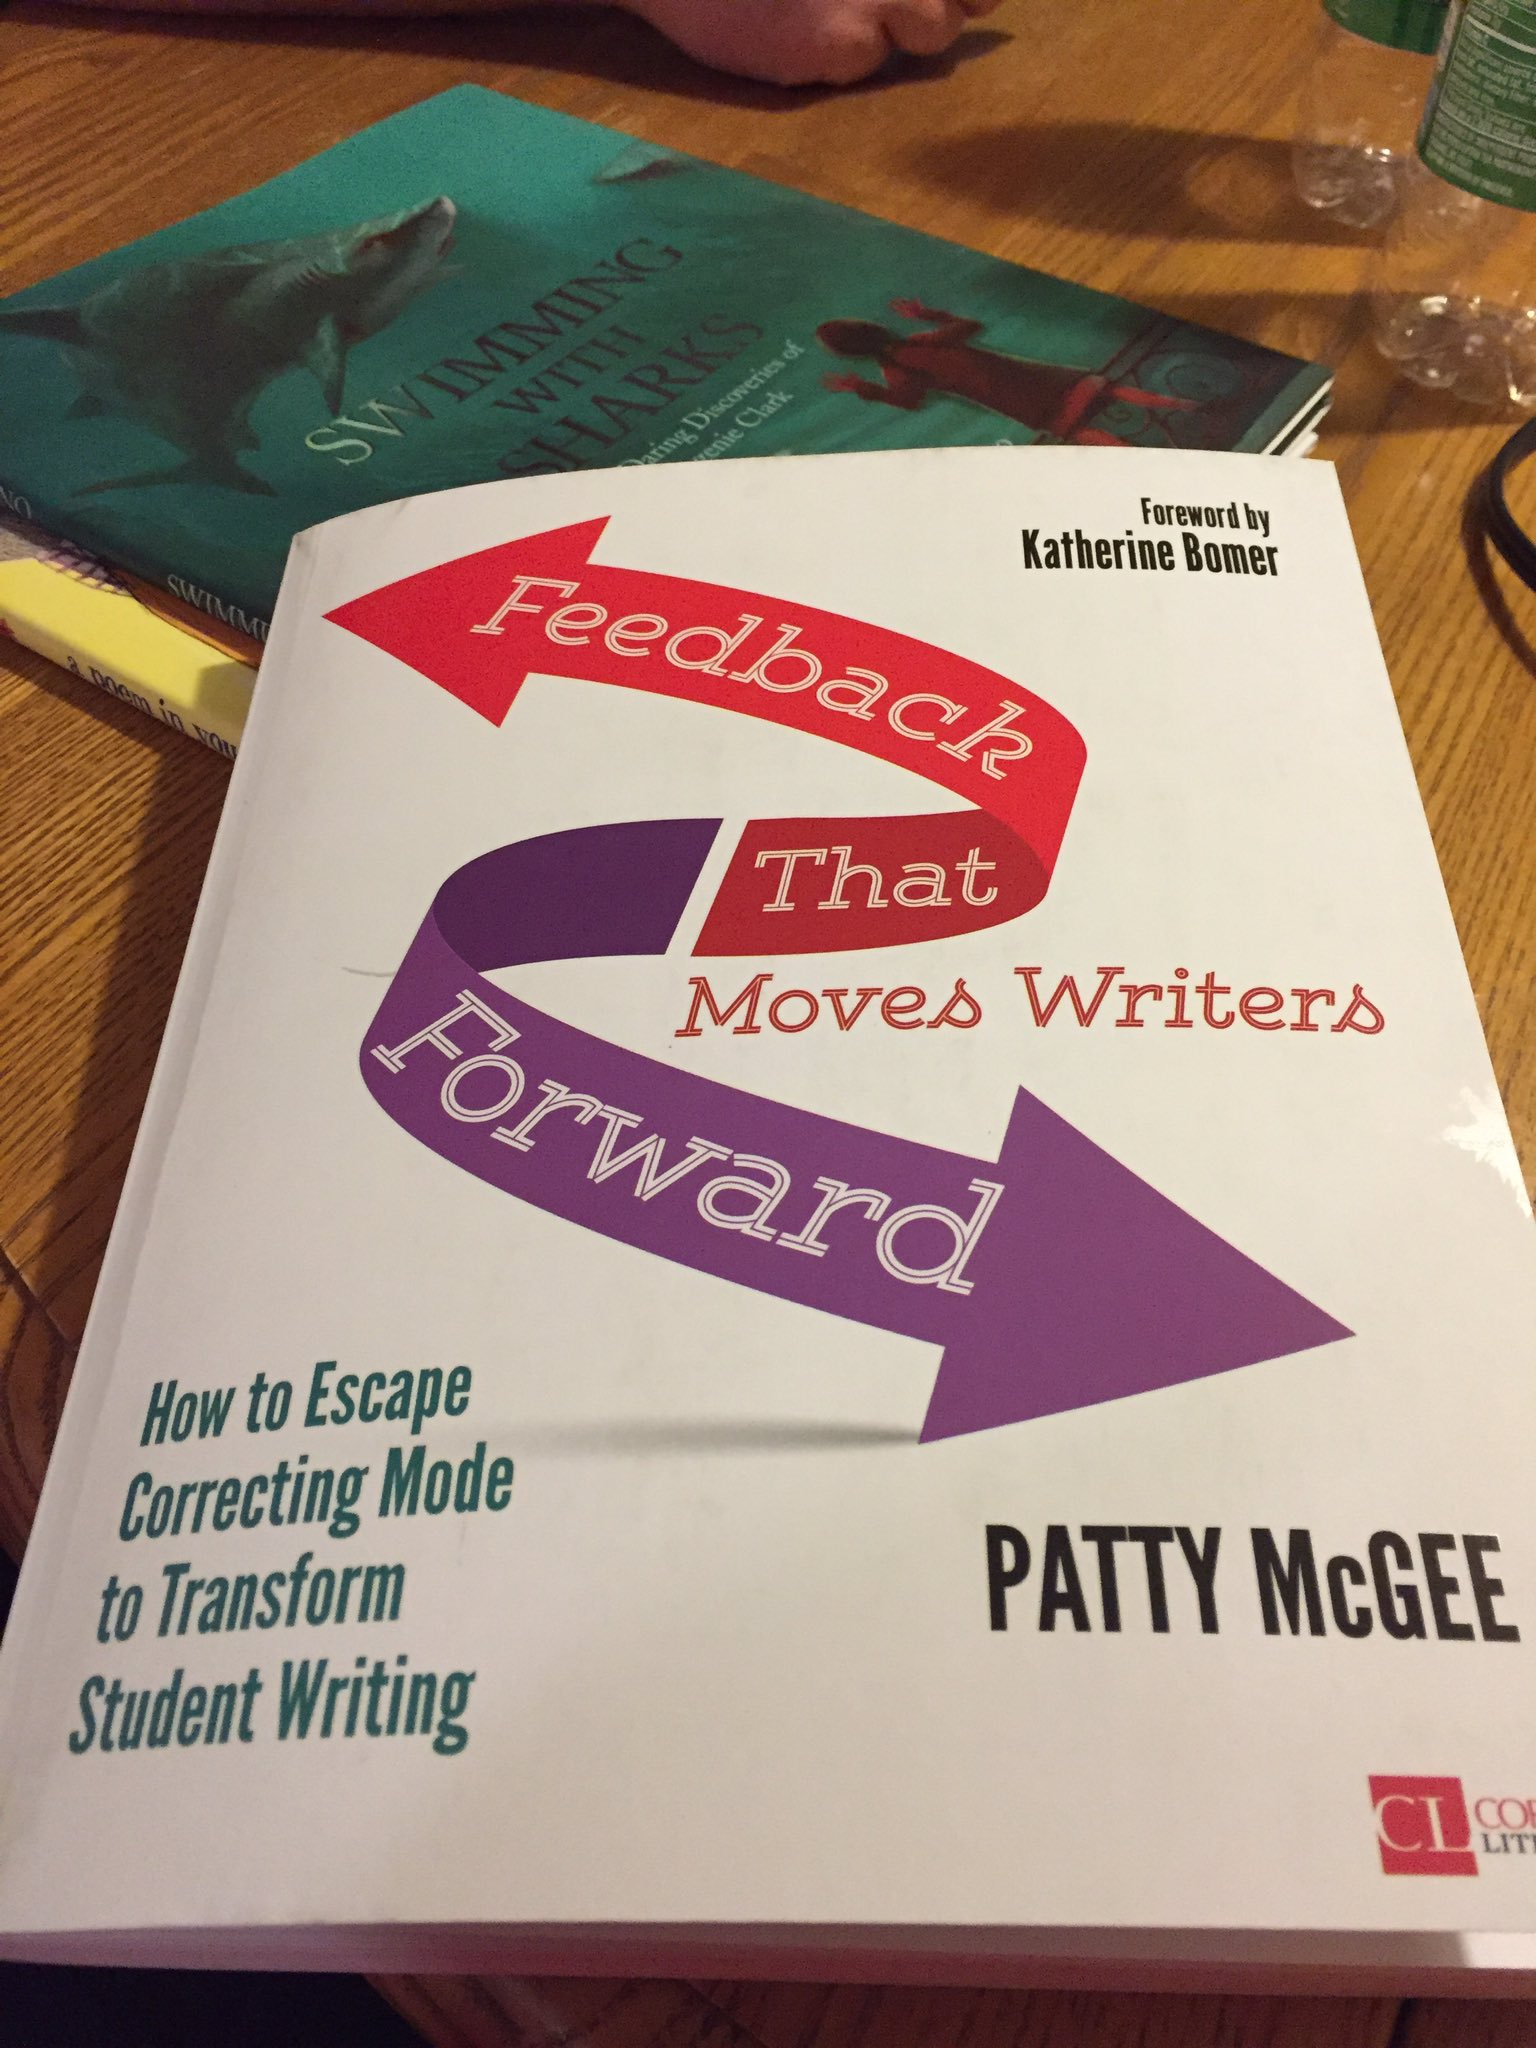 This arrived today. Cable has been out most of the night. I think I have a plan! #G2great @pmgmcgee https://t.co/zKKwCcK3Jn